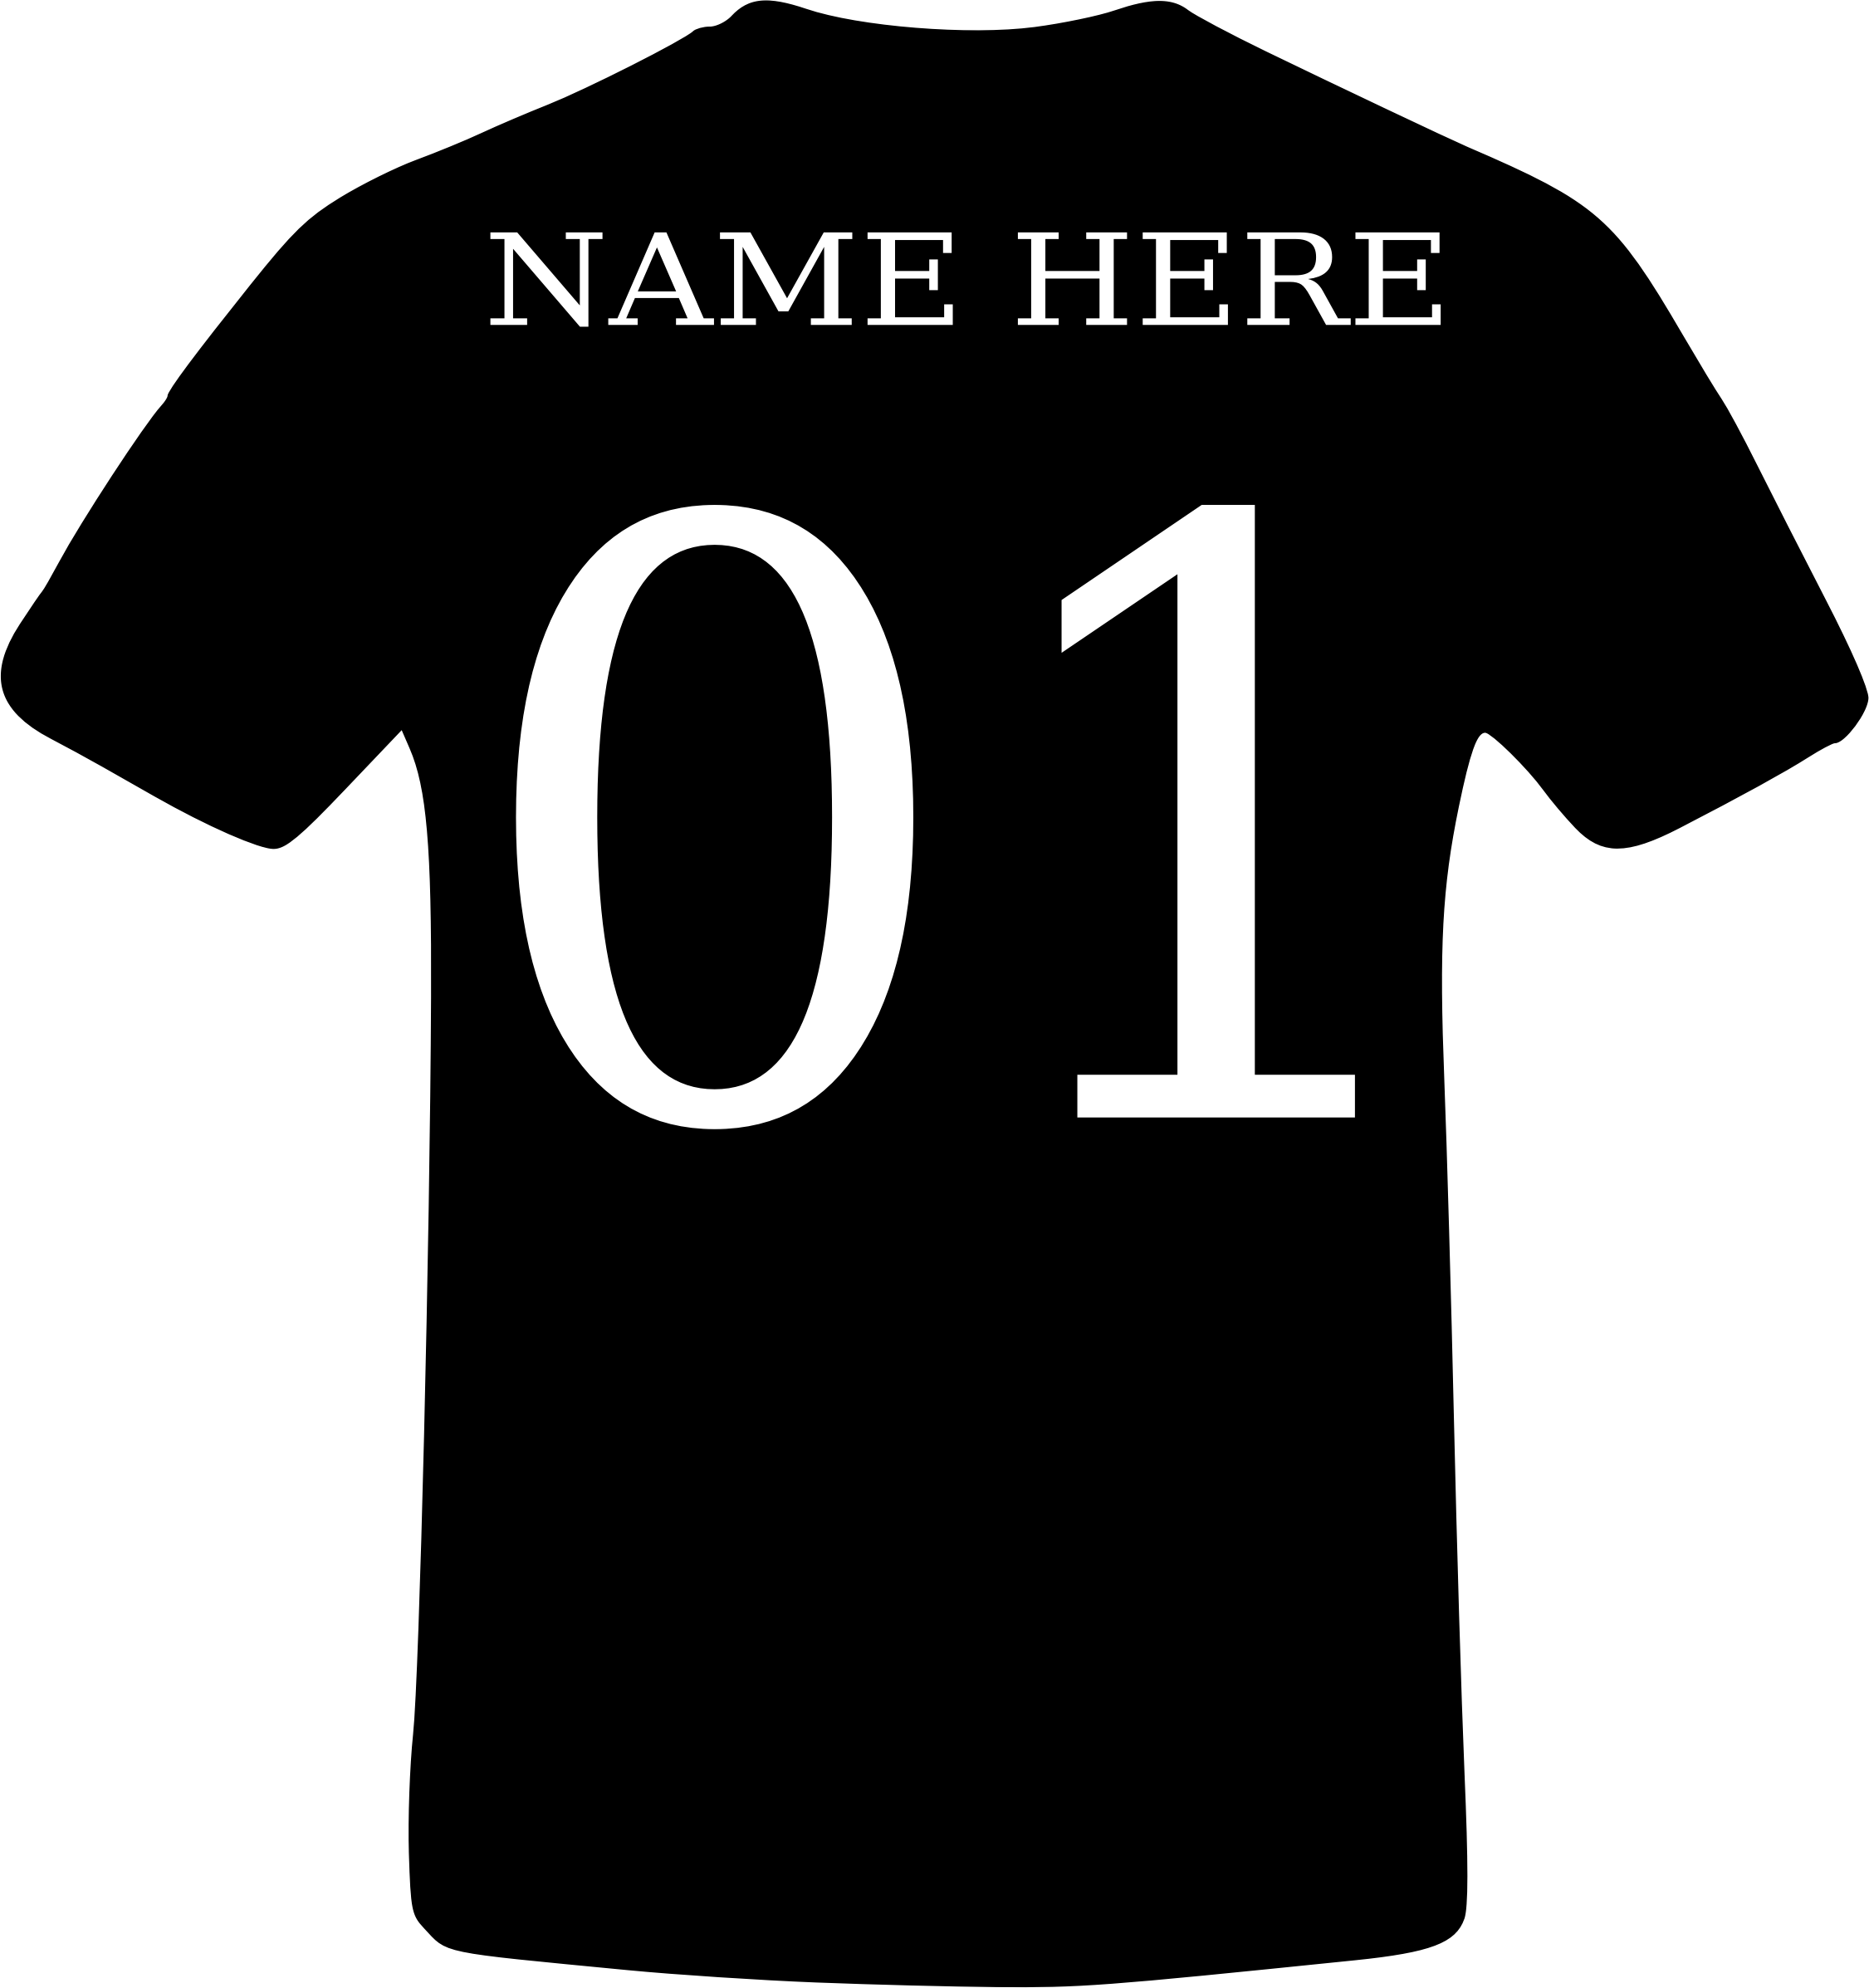 Name Number T-Shirt by subpressions@gmail.com